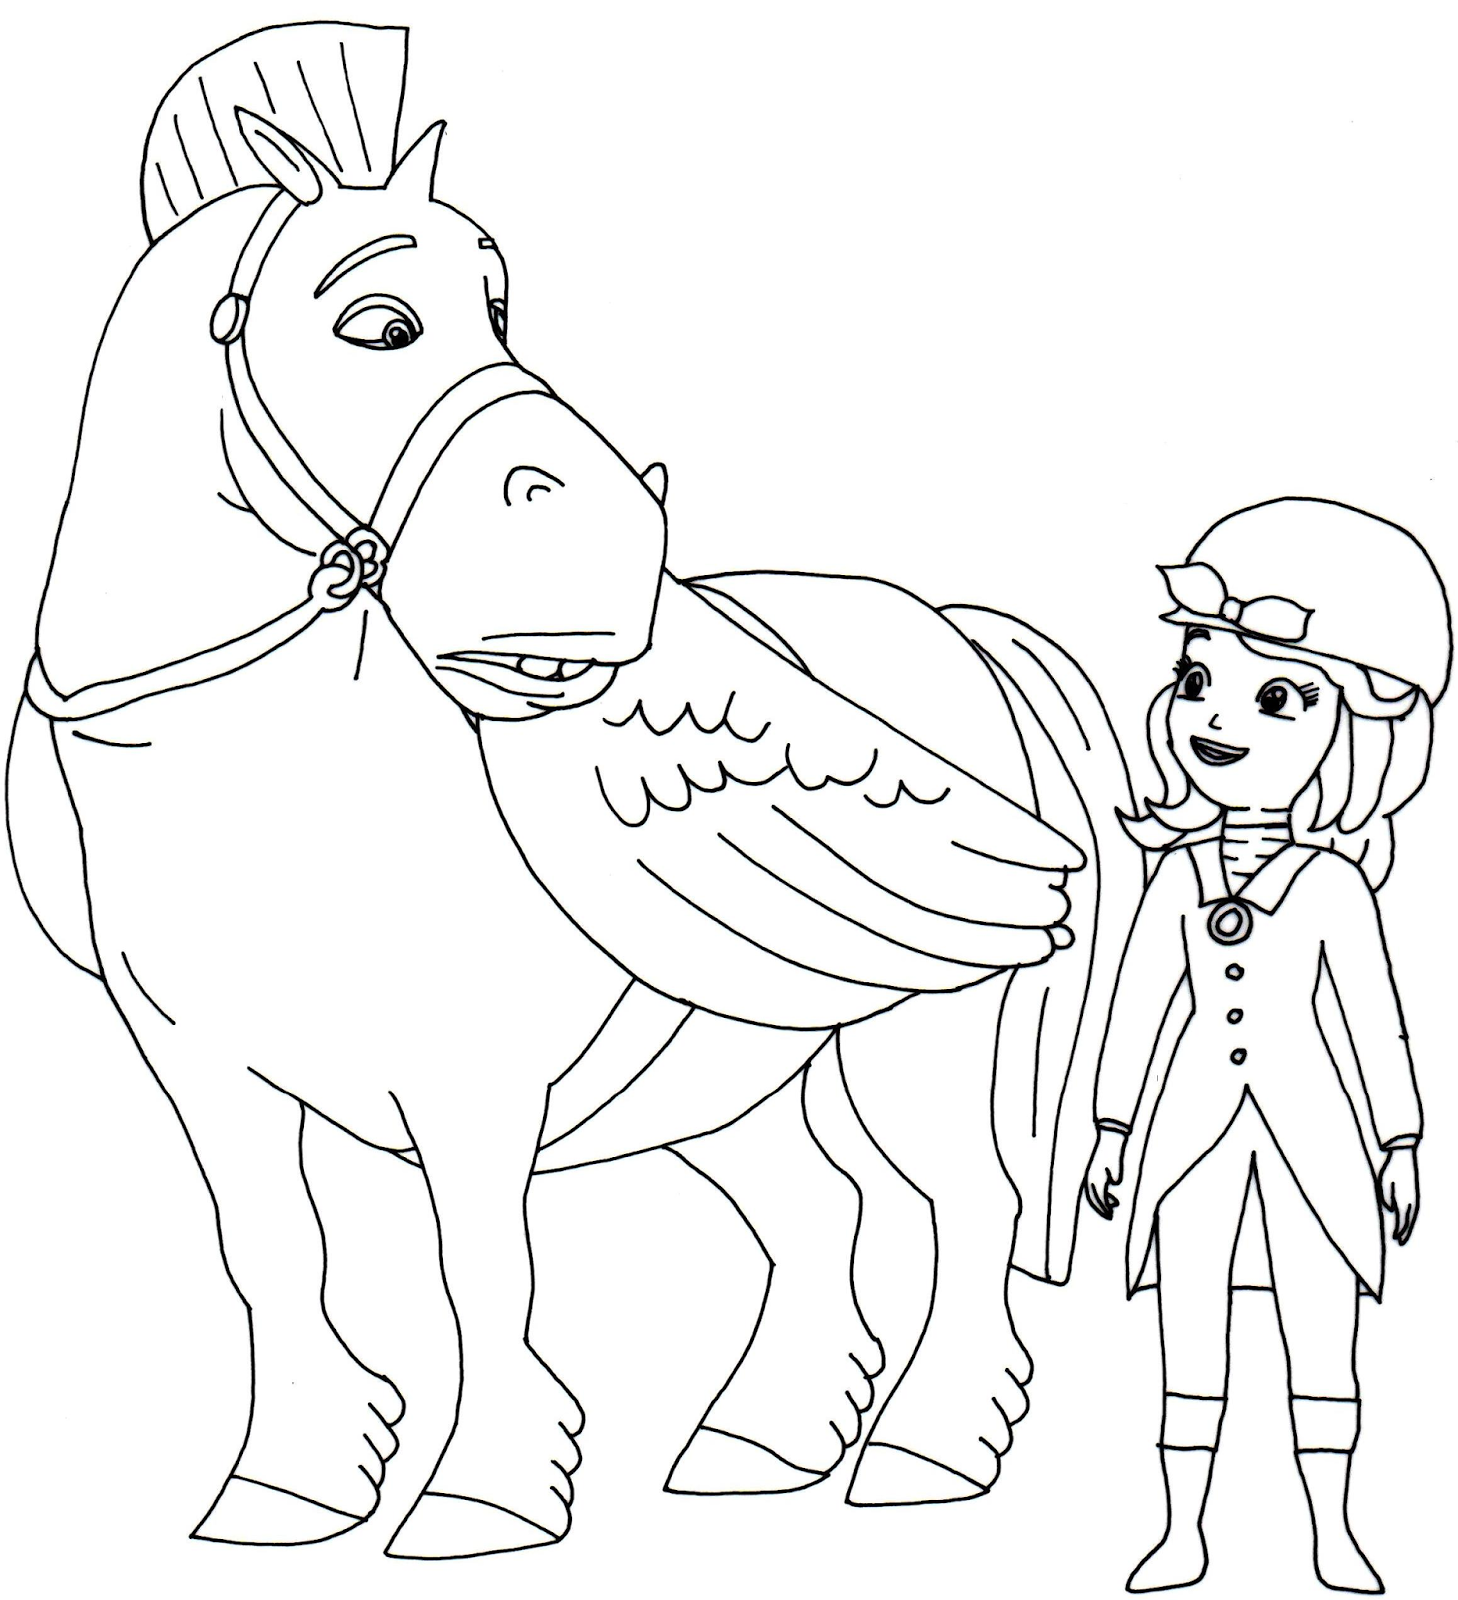 It's just a graphic of Universal Princess Sophia Coloring Pages